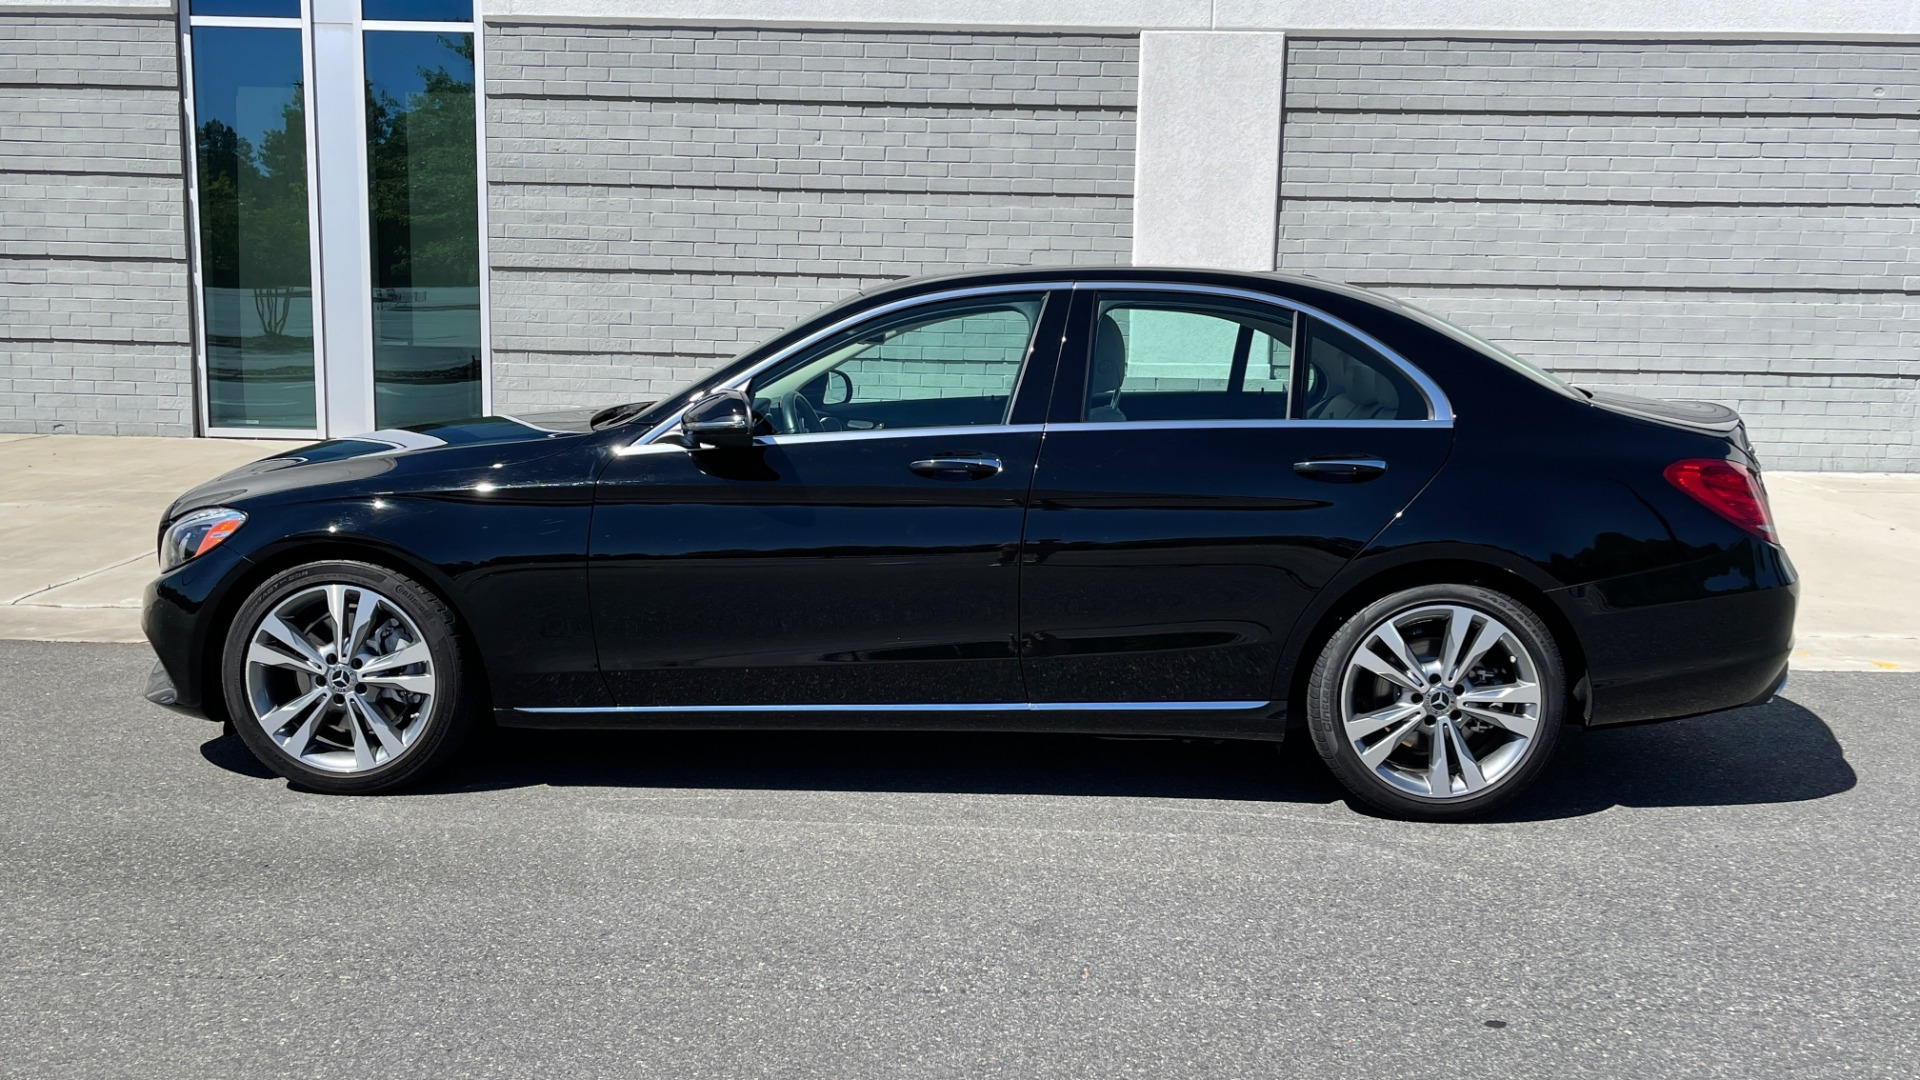 Used 2018 Mercedes-Benz C-CLASS C 300 PREMIUM / APPLE CARPLAY / SUNROOF / REARVIEW for sale $31,995 at Formula Imports in Charlotte NC 28227 4